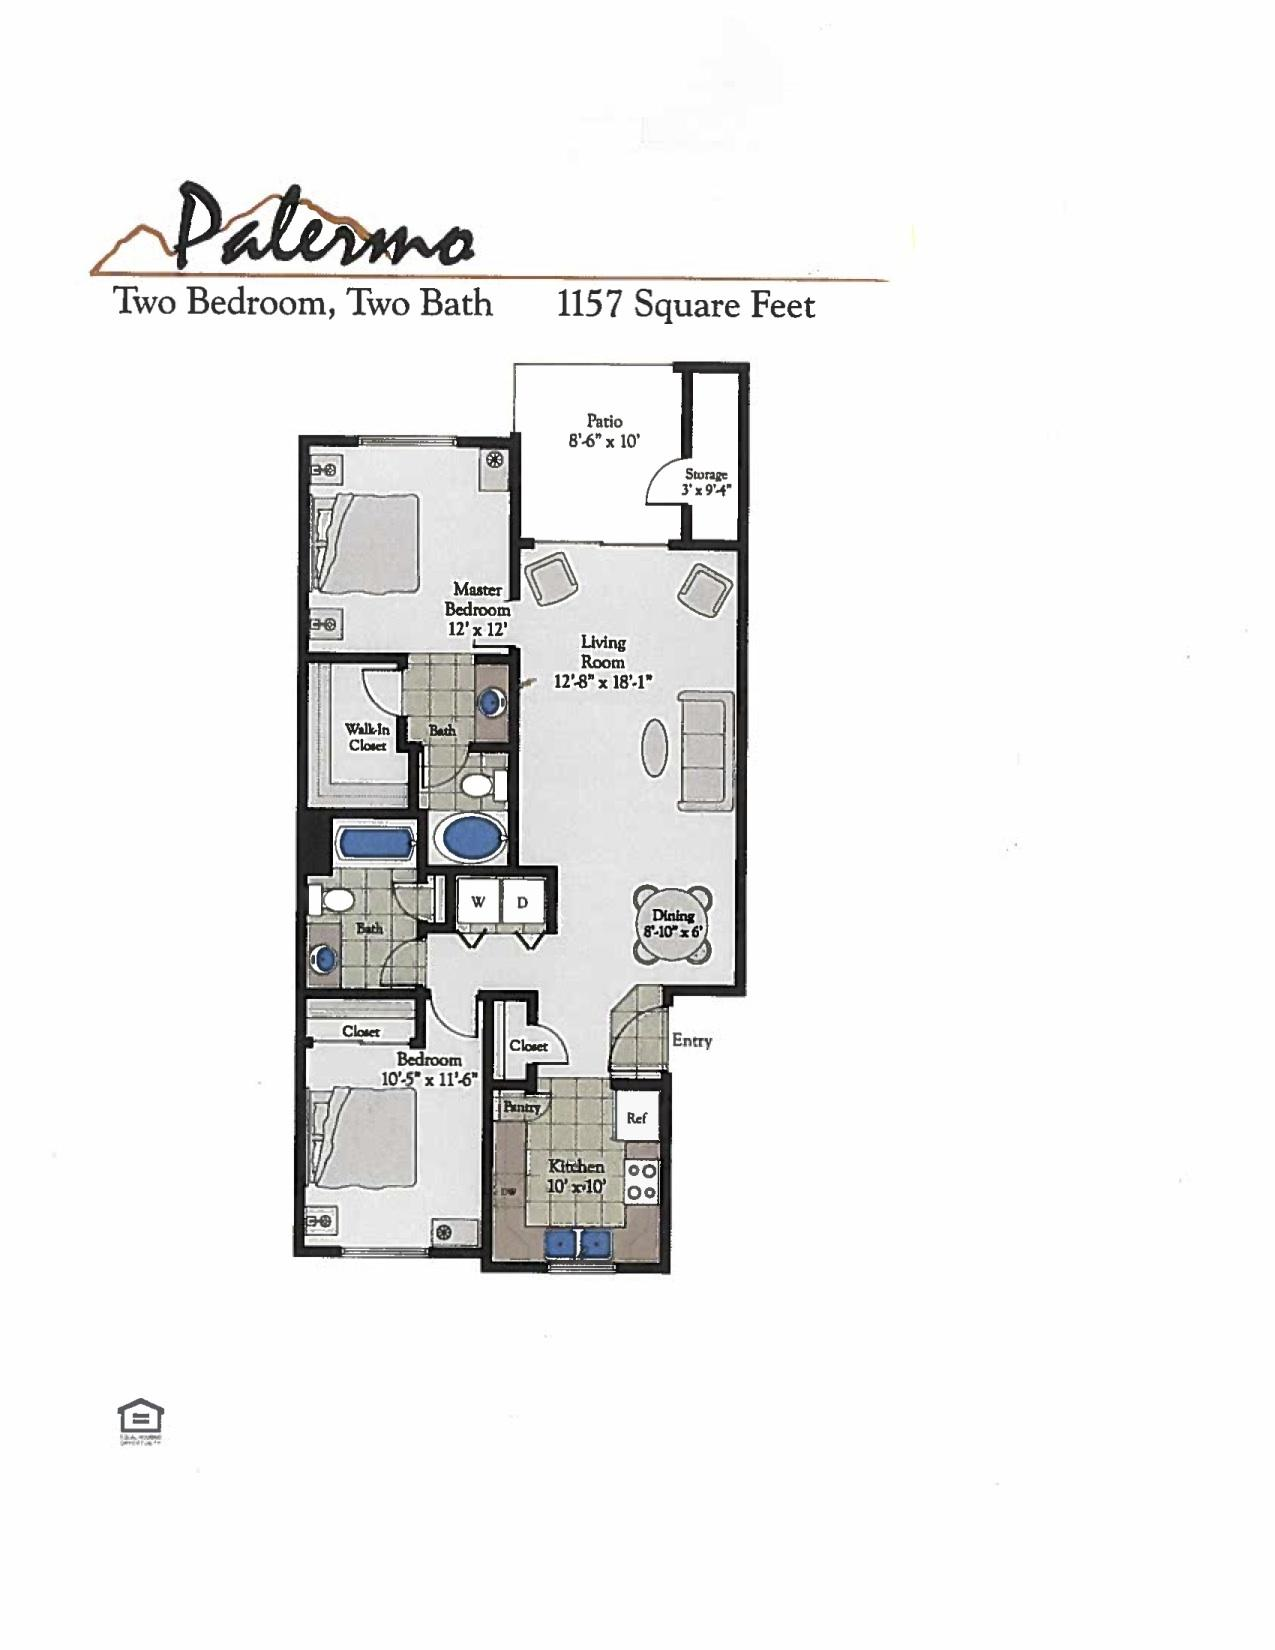 Bella Terra Palermo Floor Plan